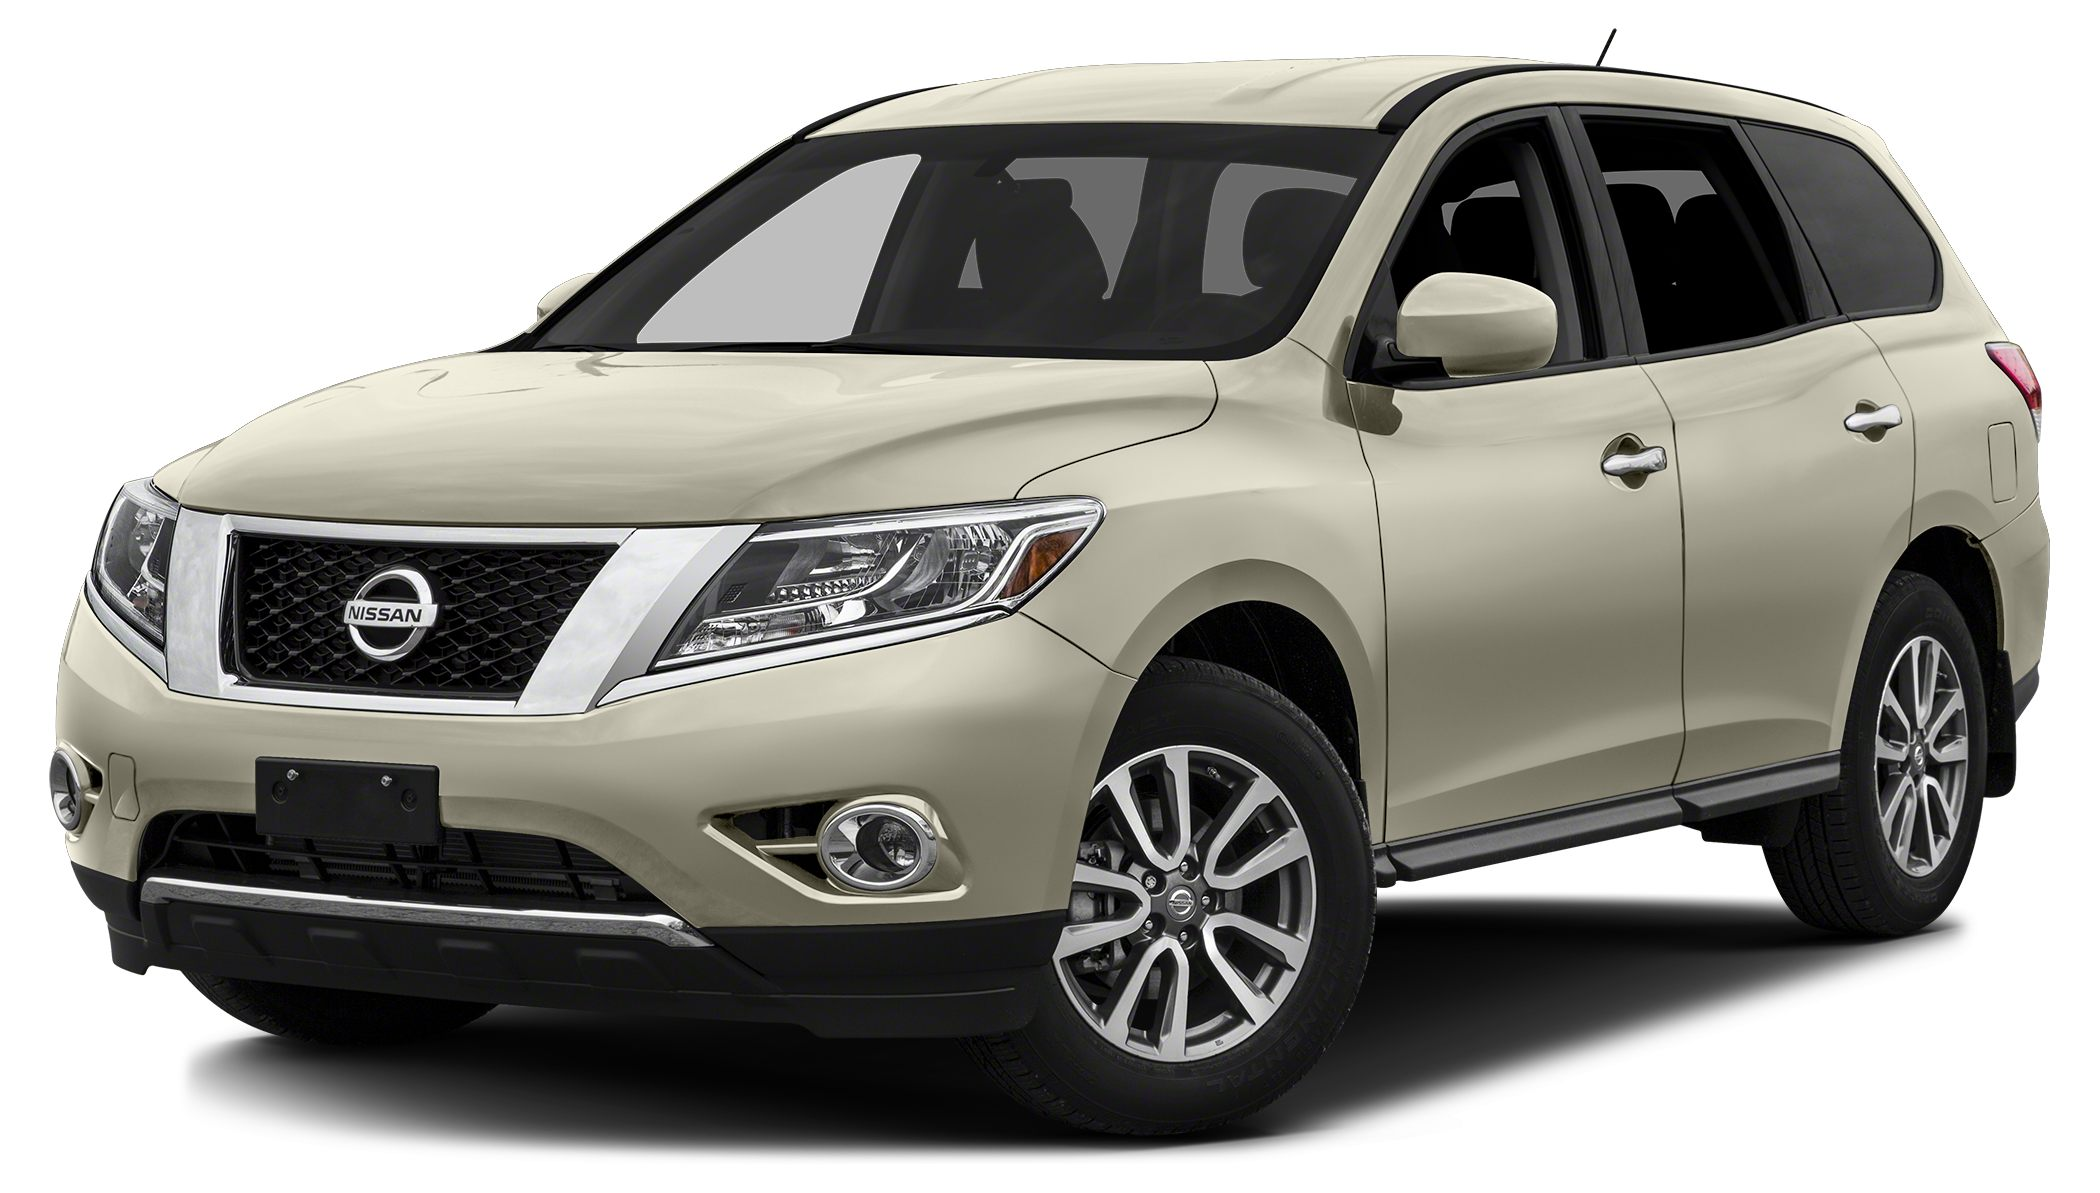 2014 Nissan Pathfinder Platinum Step into the 2014 Nissan Pathfinder Youll appreciate its safety